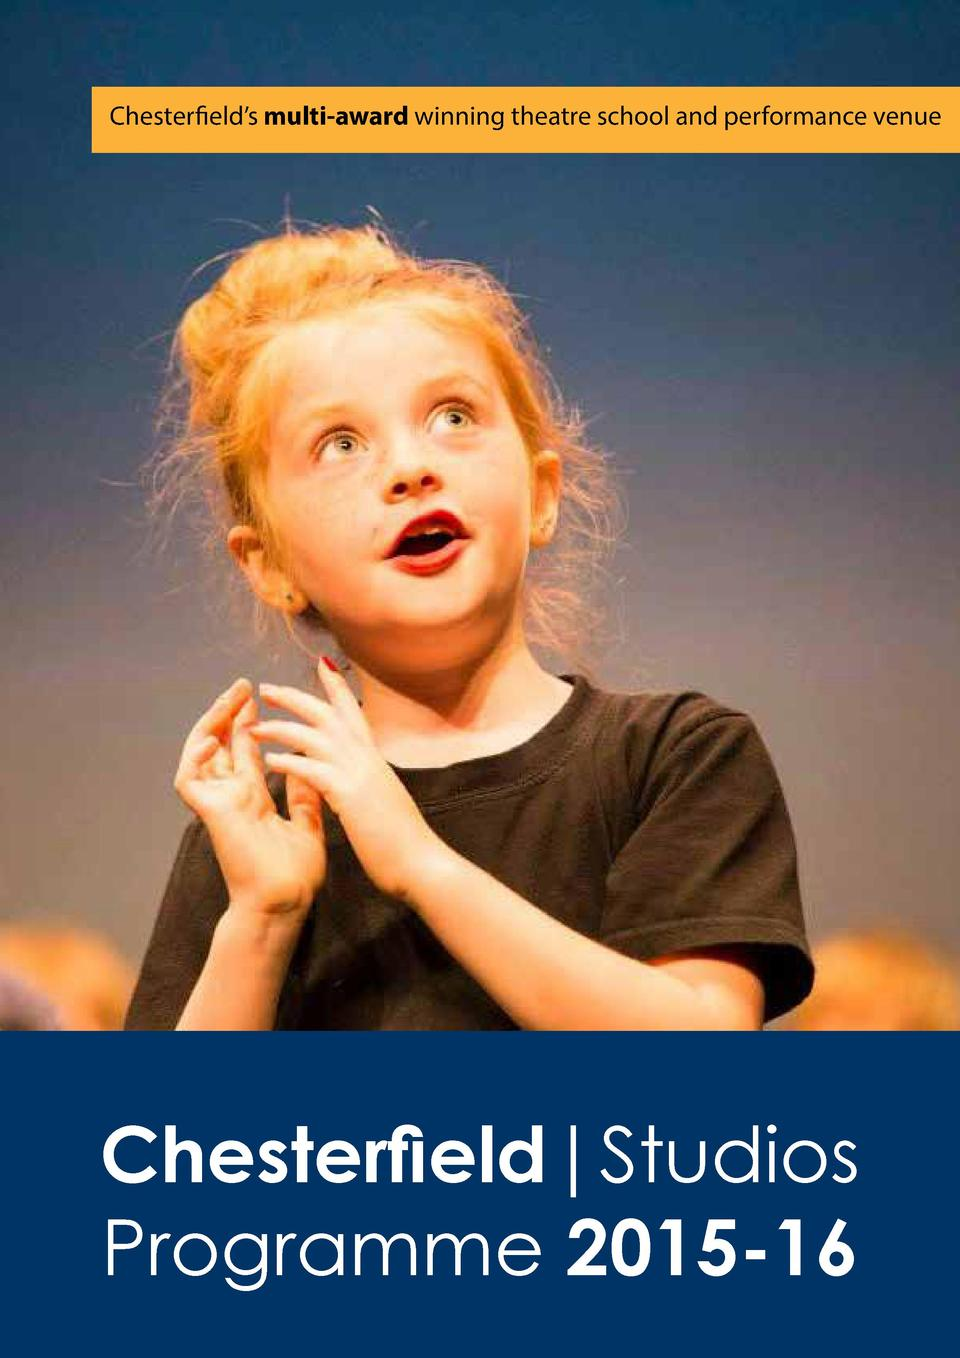 Chesterfield   s multi-award winning theatre school and performance venue  Chesterfield Studios Programme 2015-16